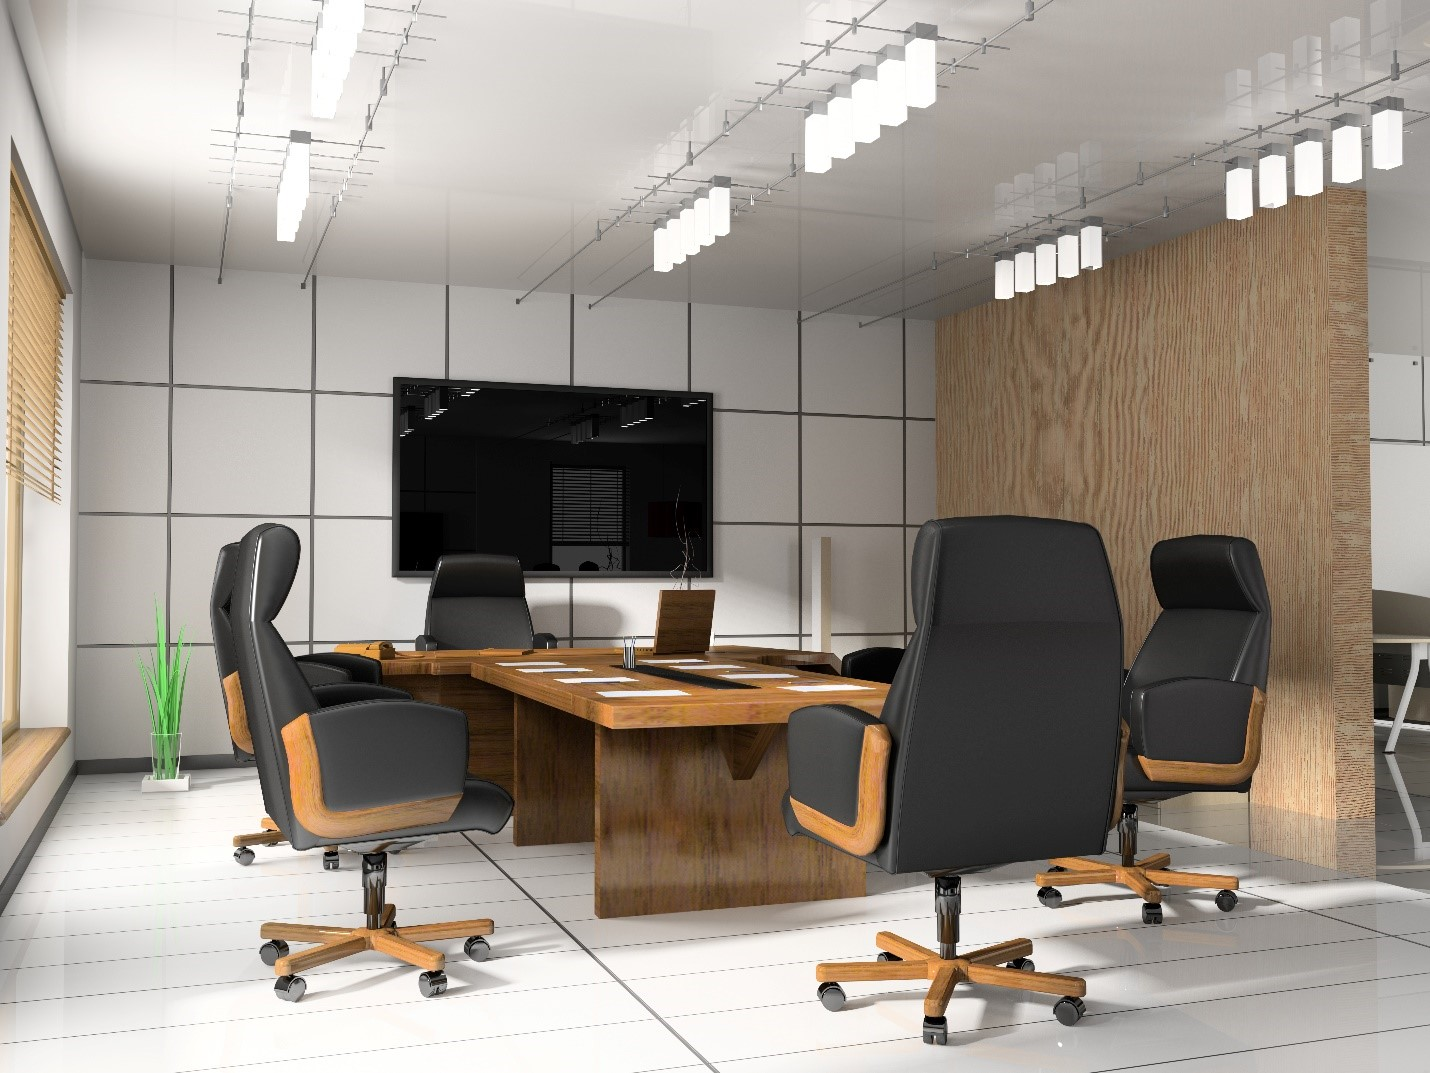 3 Innovative Ways to Expand Your Conference Room AV in 2020